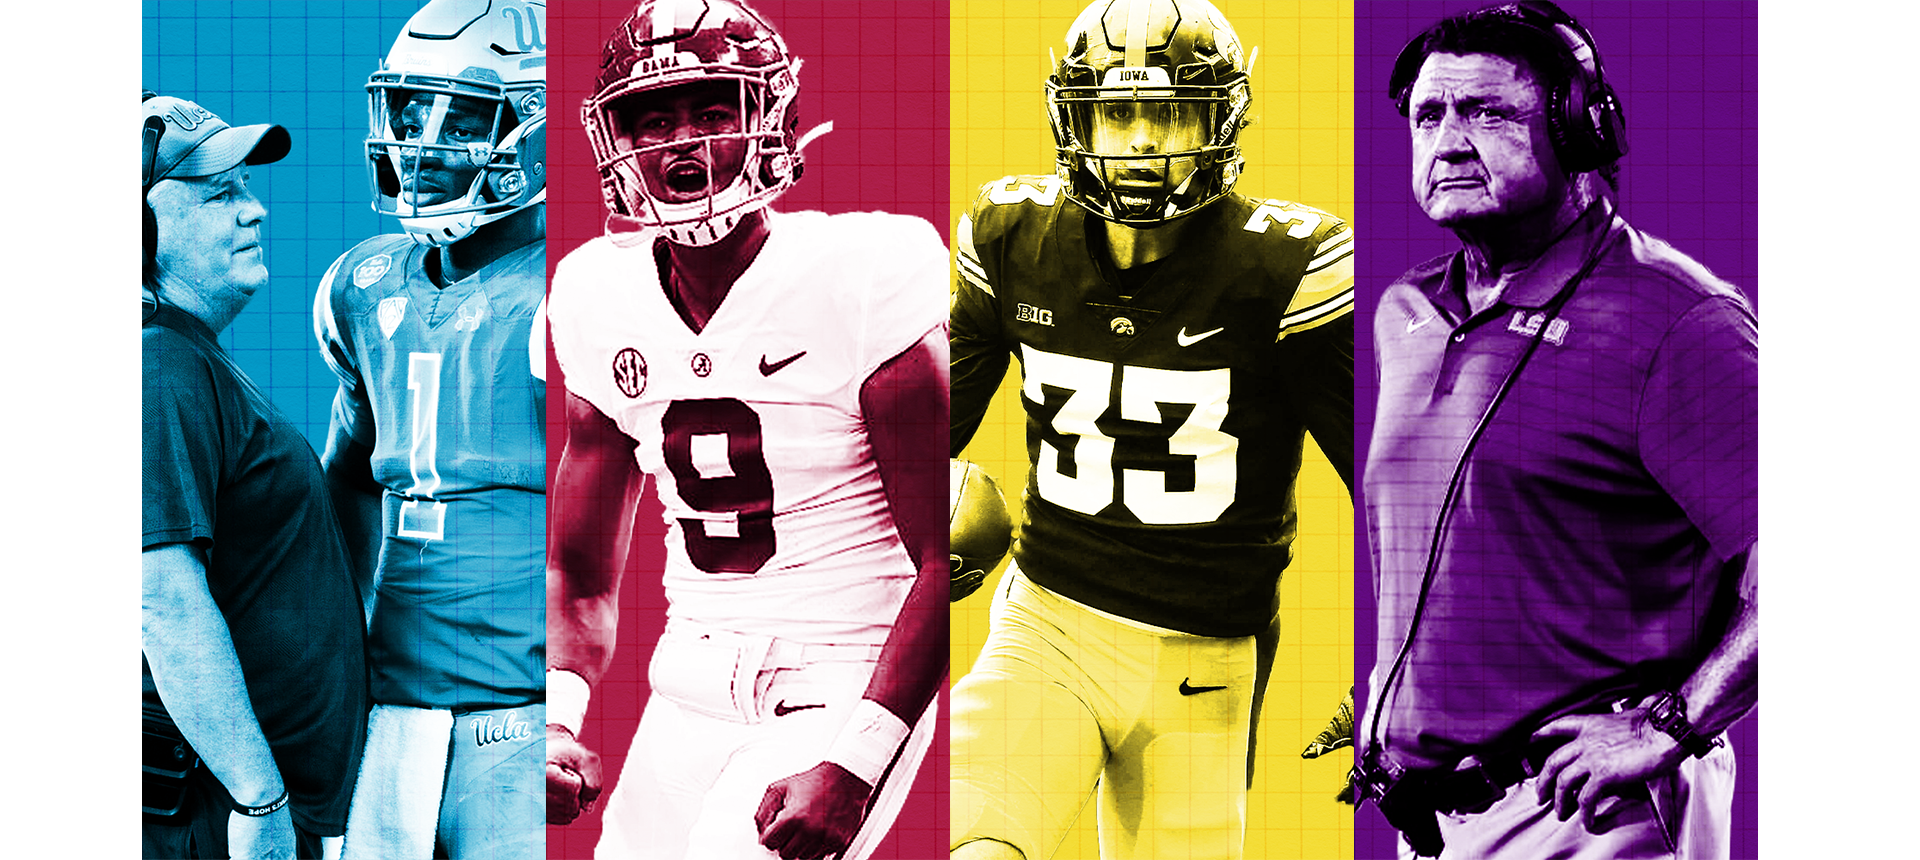 ESPN updates the College Football Top 25 Rankings after Week One